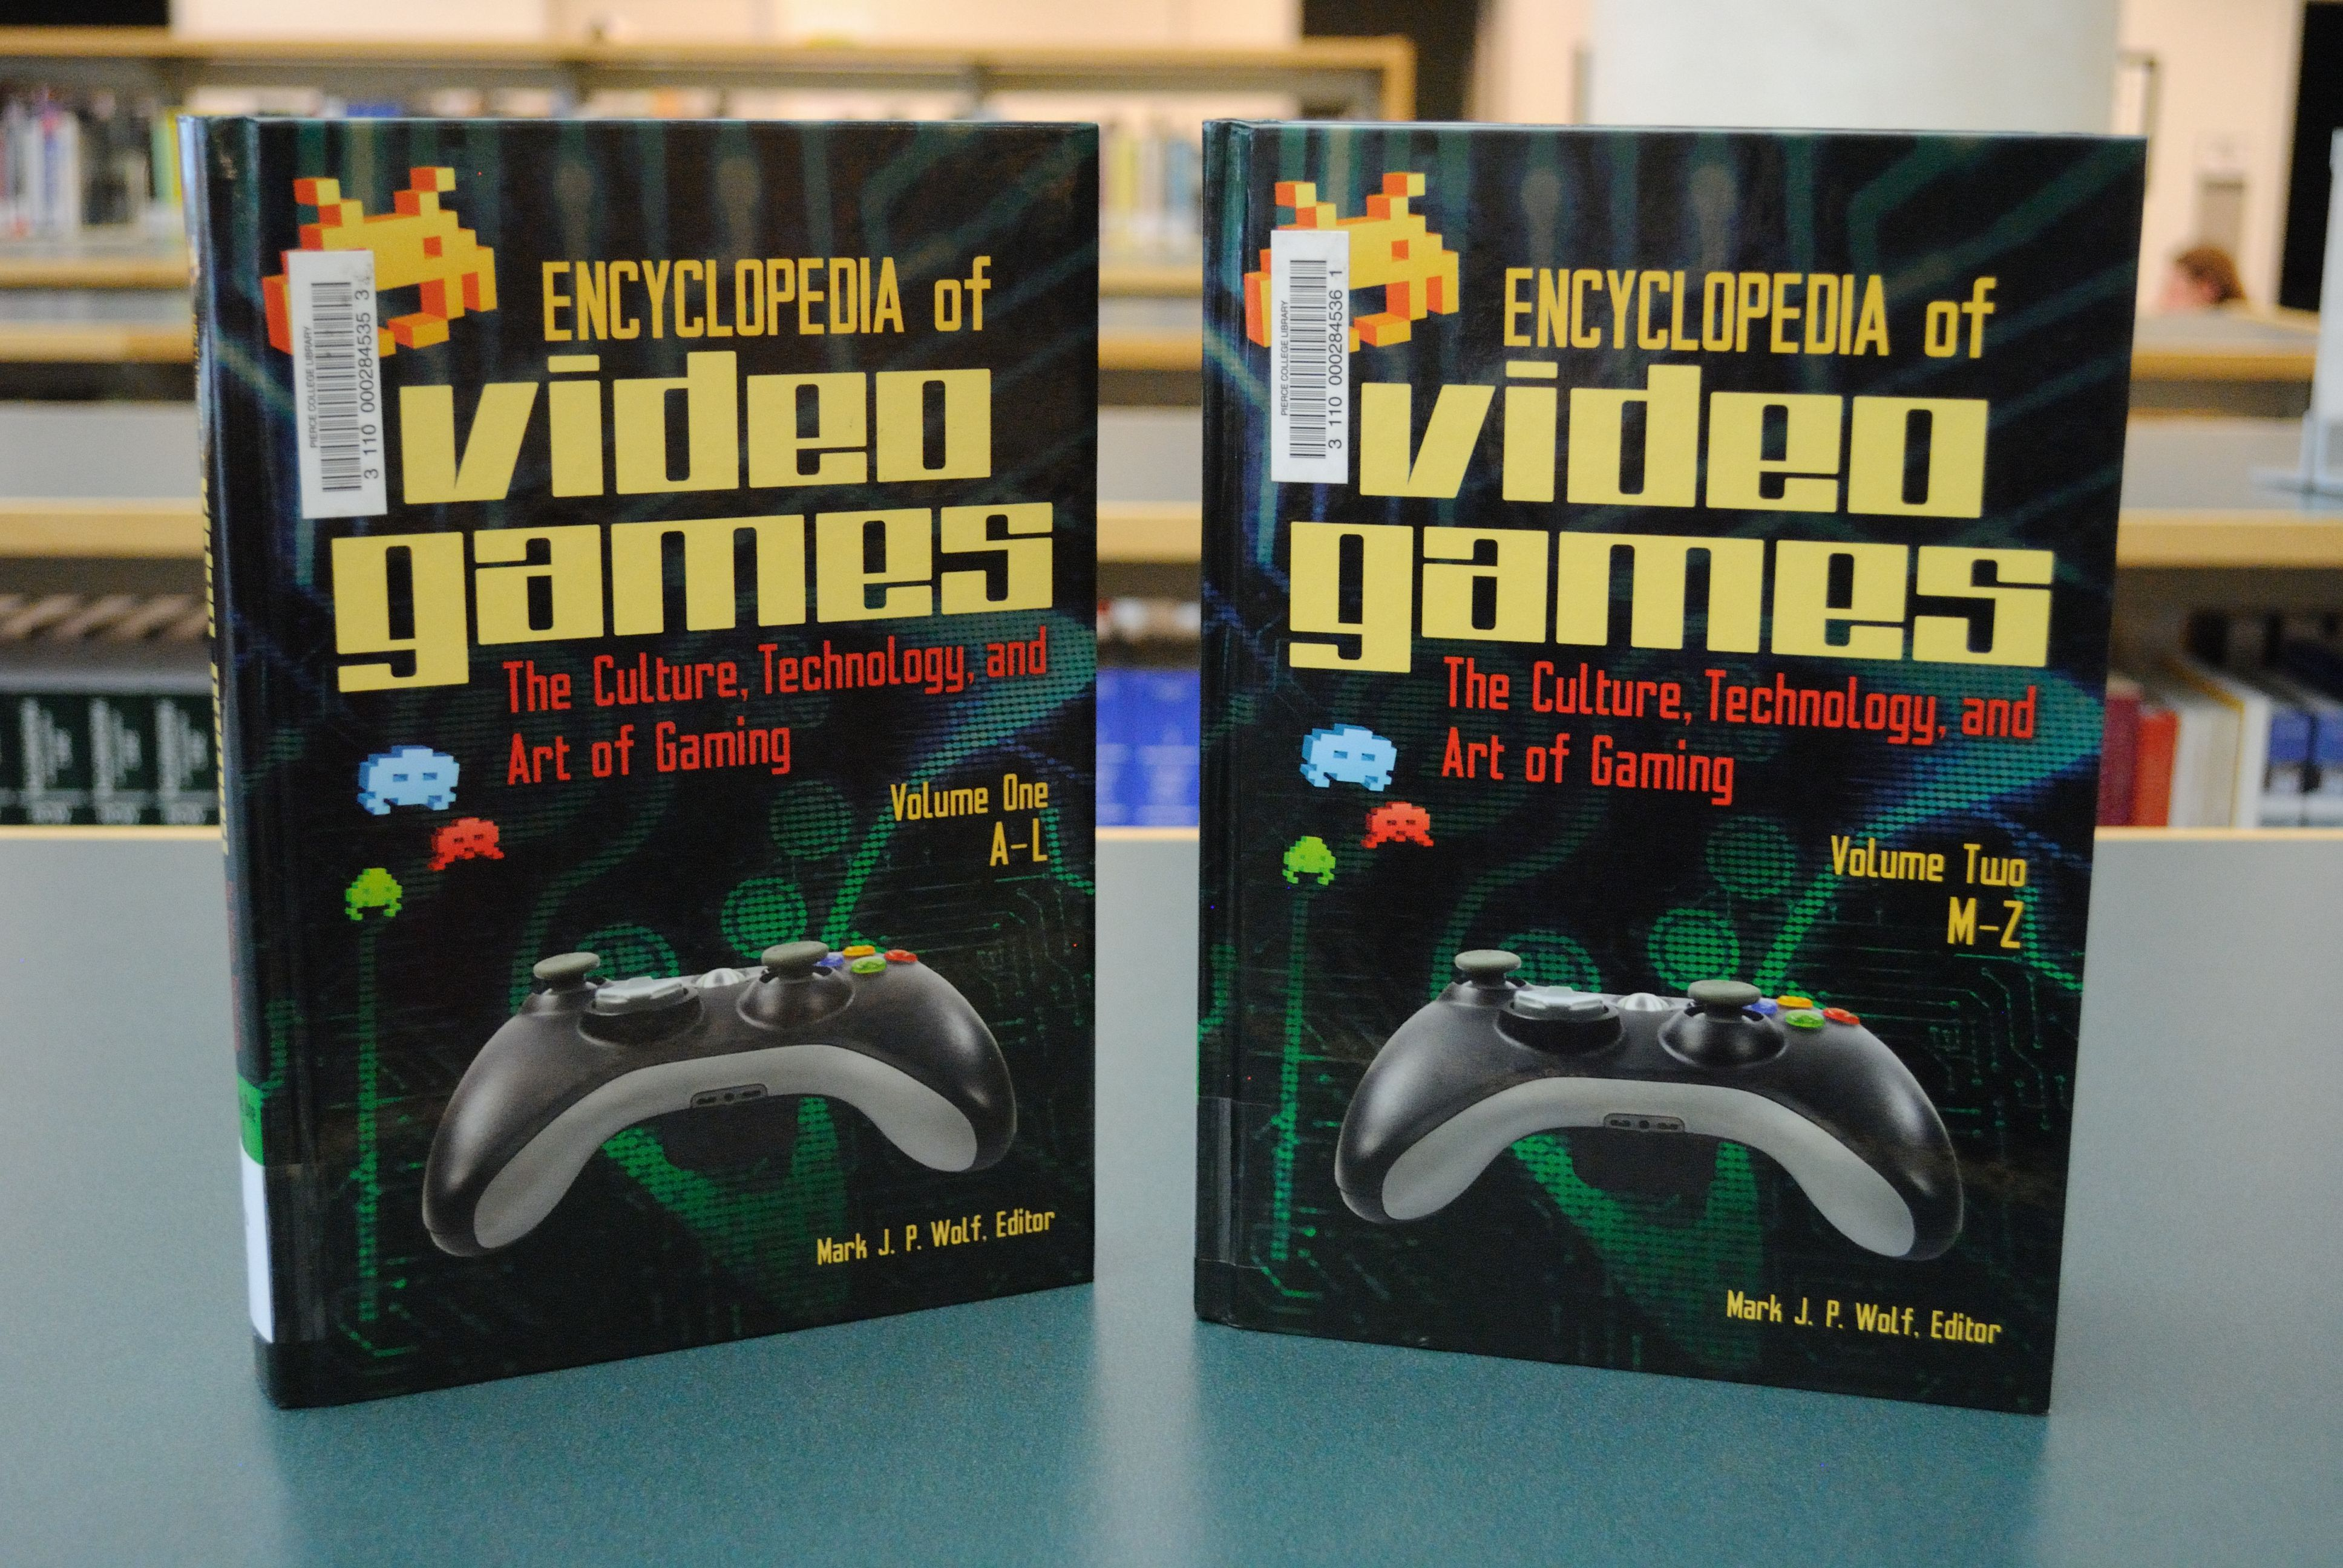 A picture of the Encyclopedia of Video Games